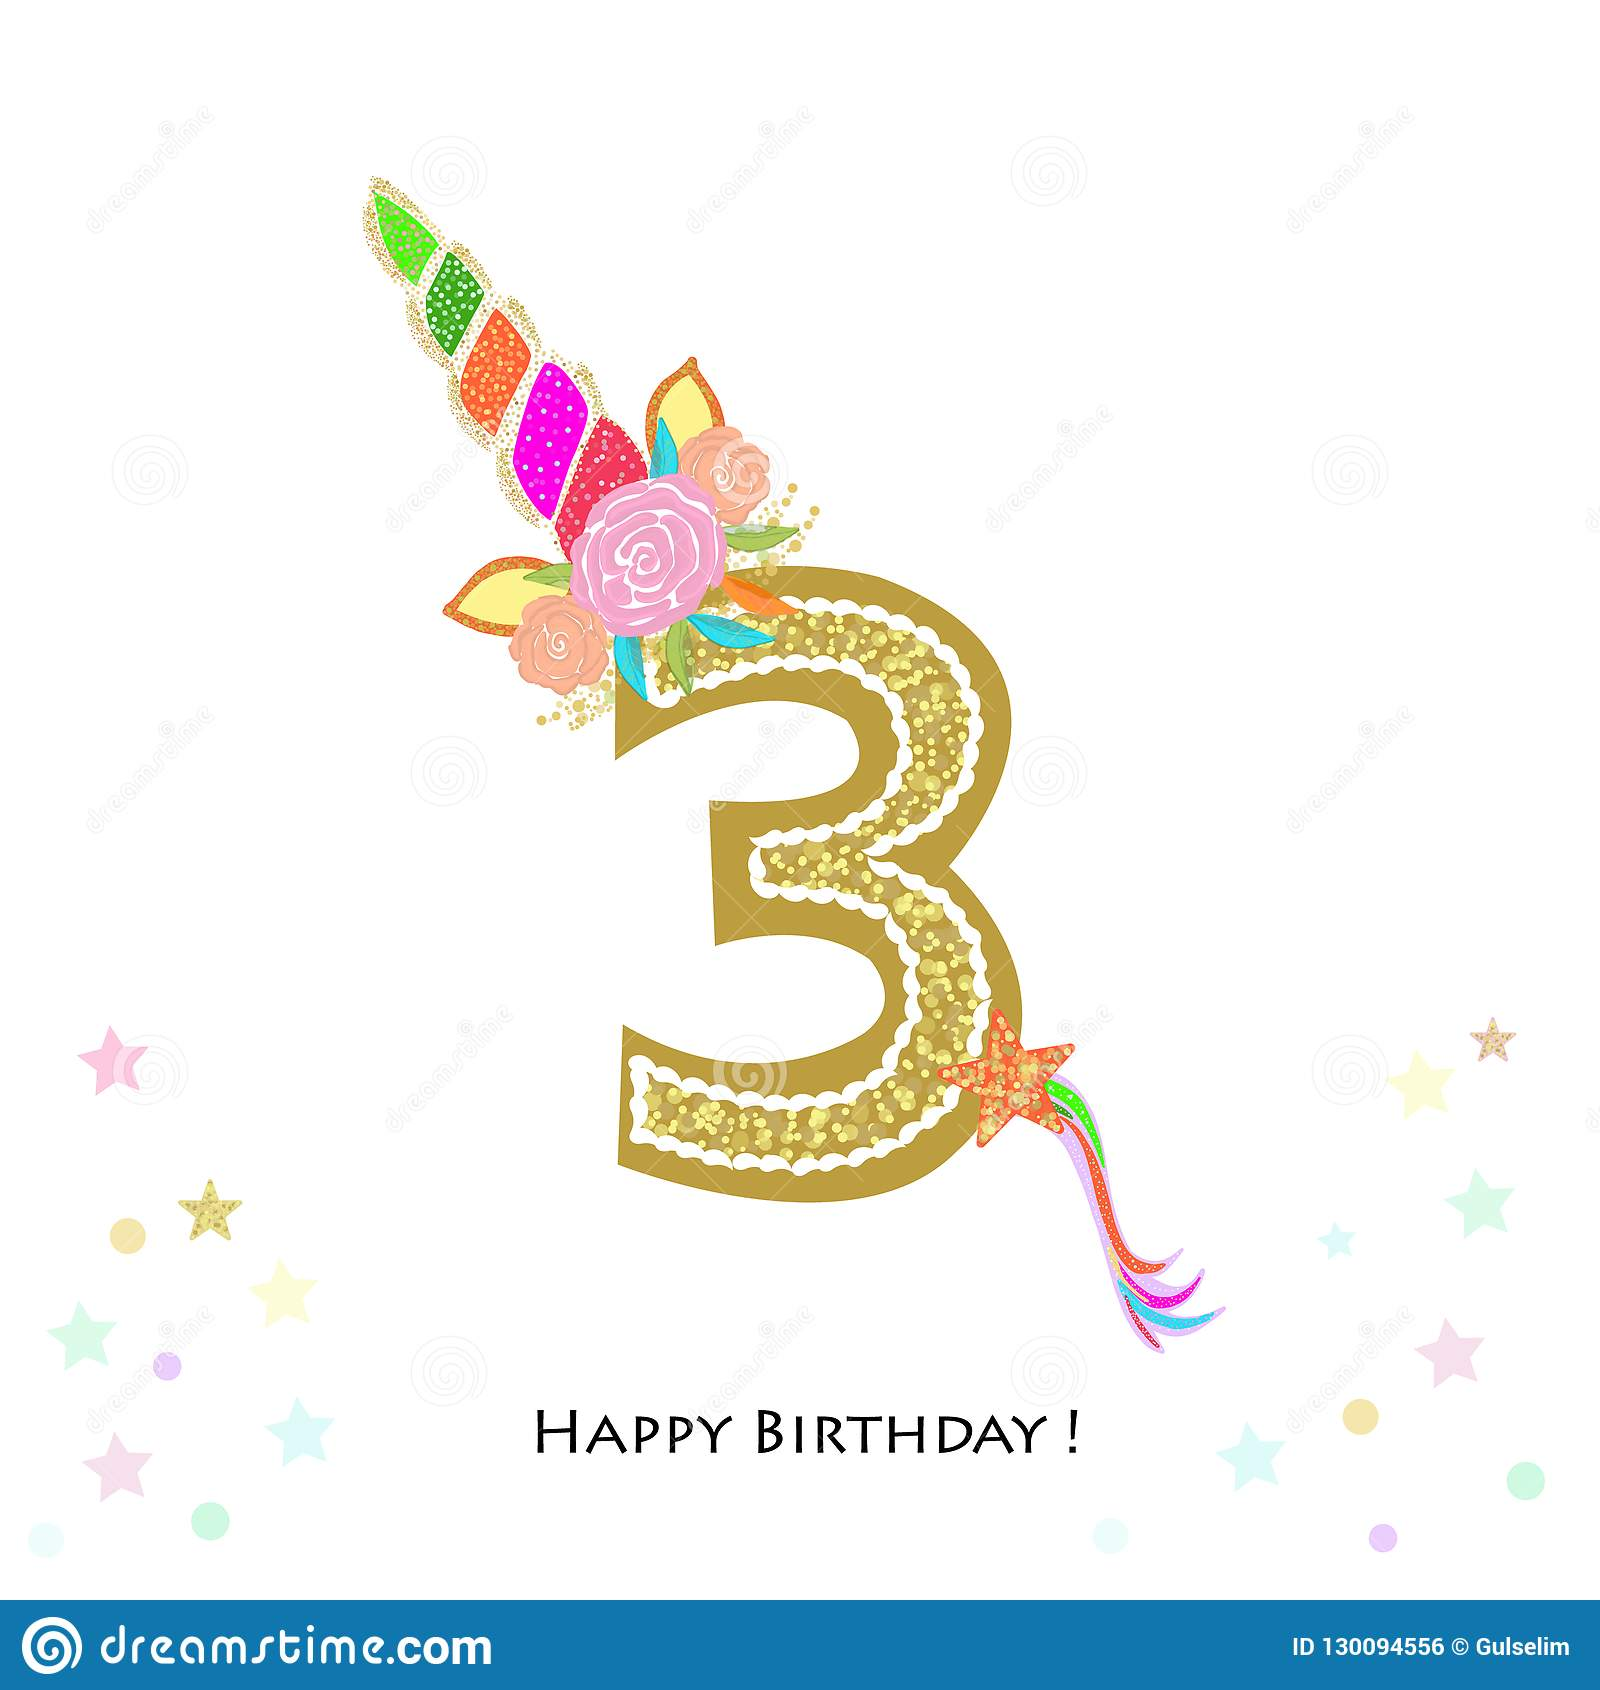 https www dreamstime com three third birthday colorful unicorn invitation baby shower party greeting card background image130094556